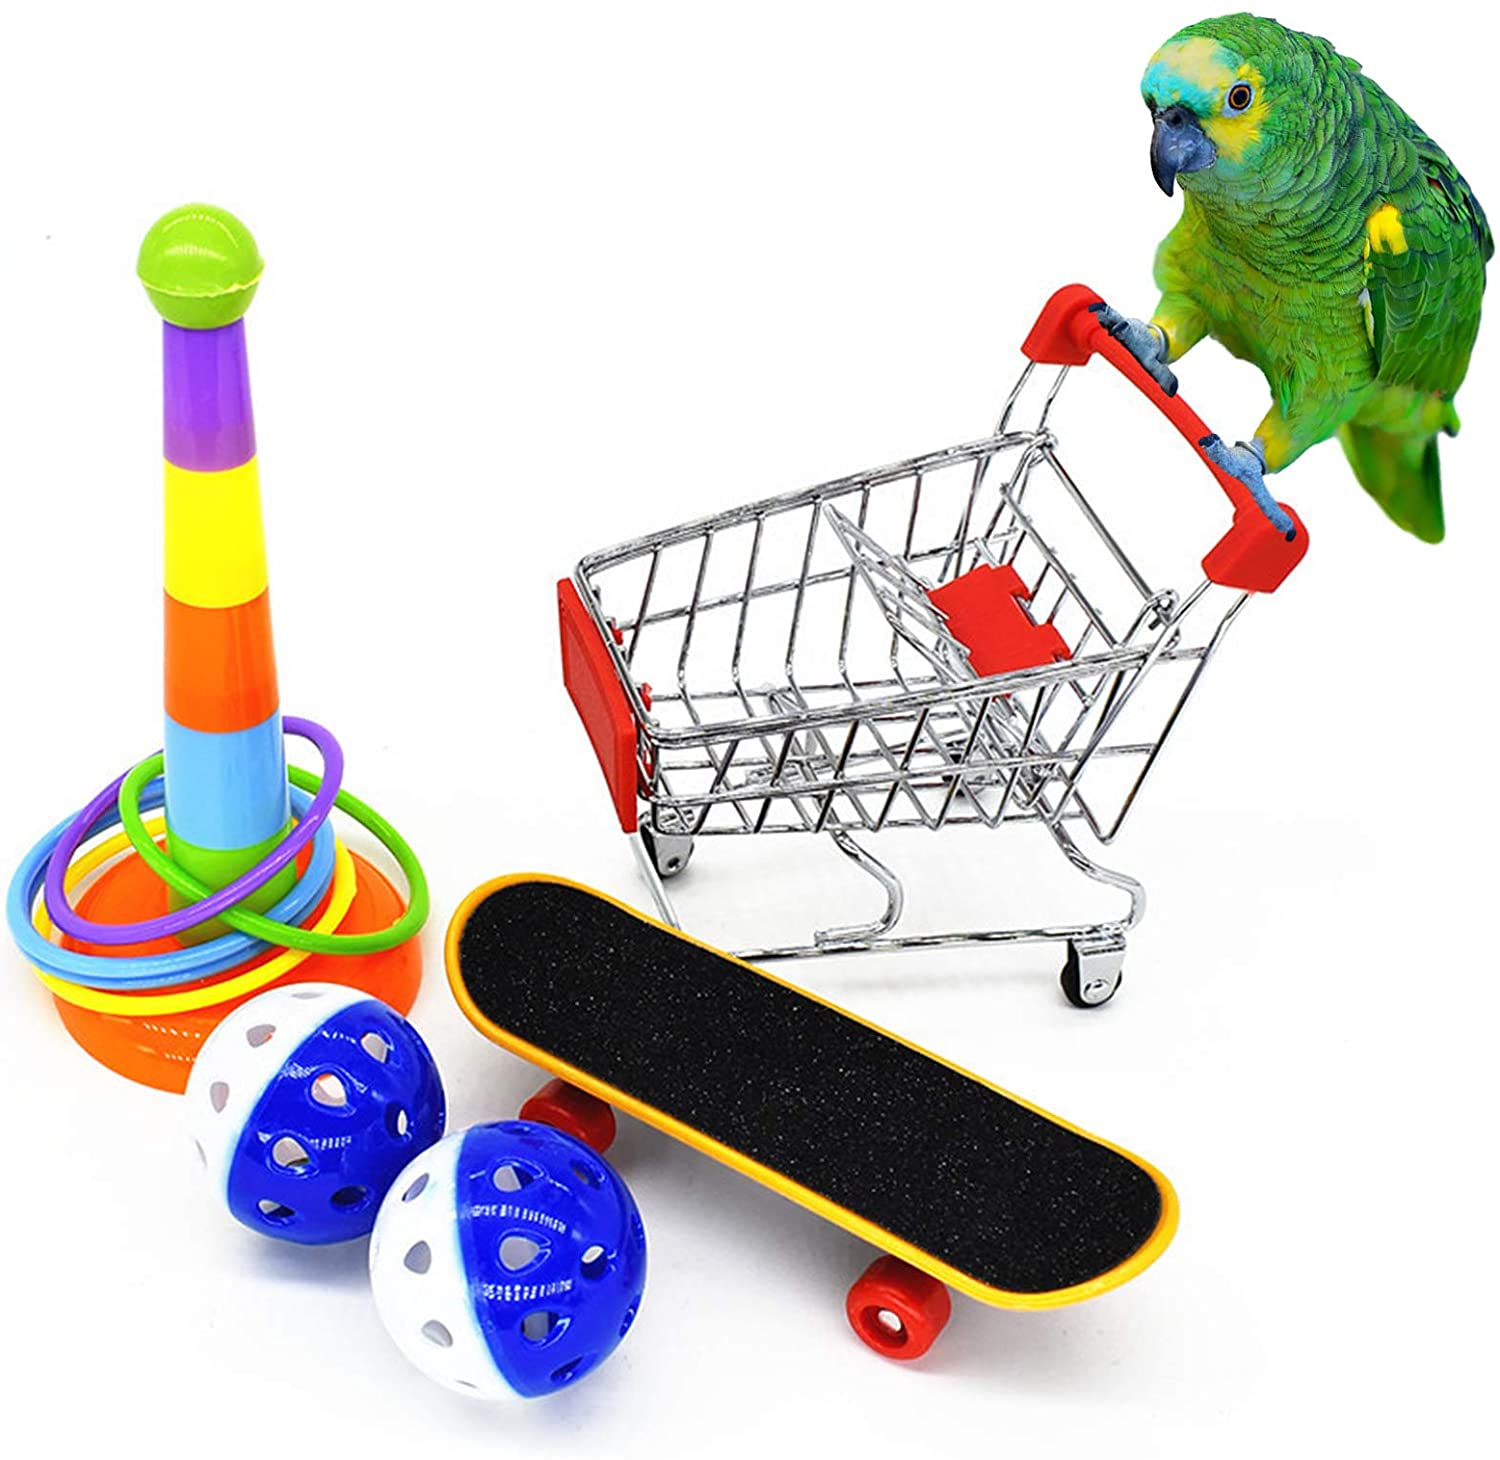 N/W 5 Pcs Parrot Toys, Parakeet Toys Cockatiel Toys, Mini Shopping Cart, Training Rings,Toy Skateboard Stand Perch and Ball, Bird Toys for Budgie Parakeet Cockatiel Conure Lovebird